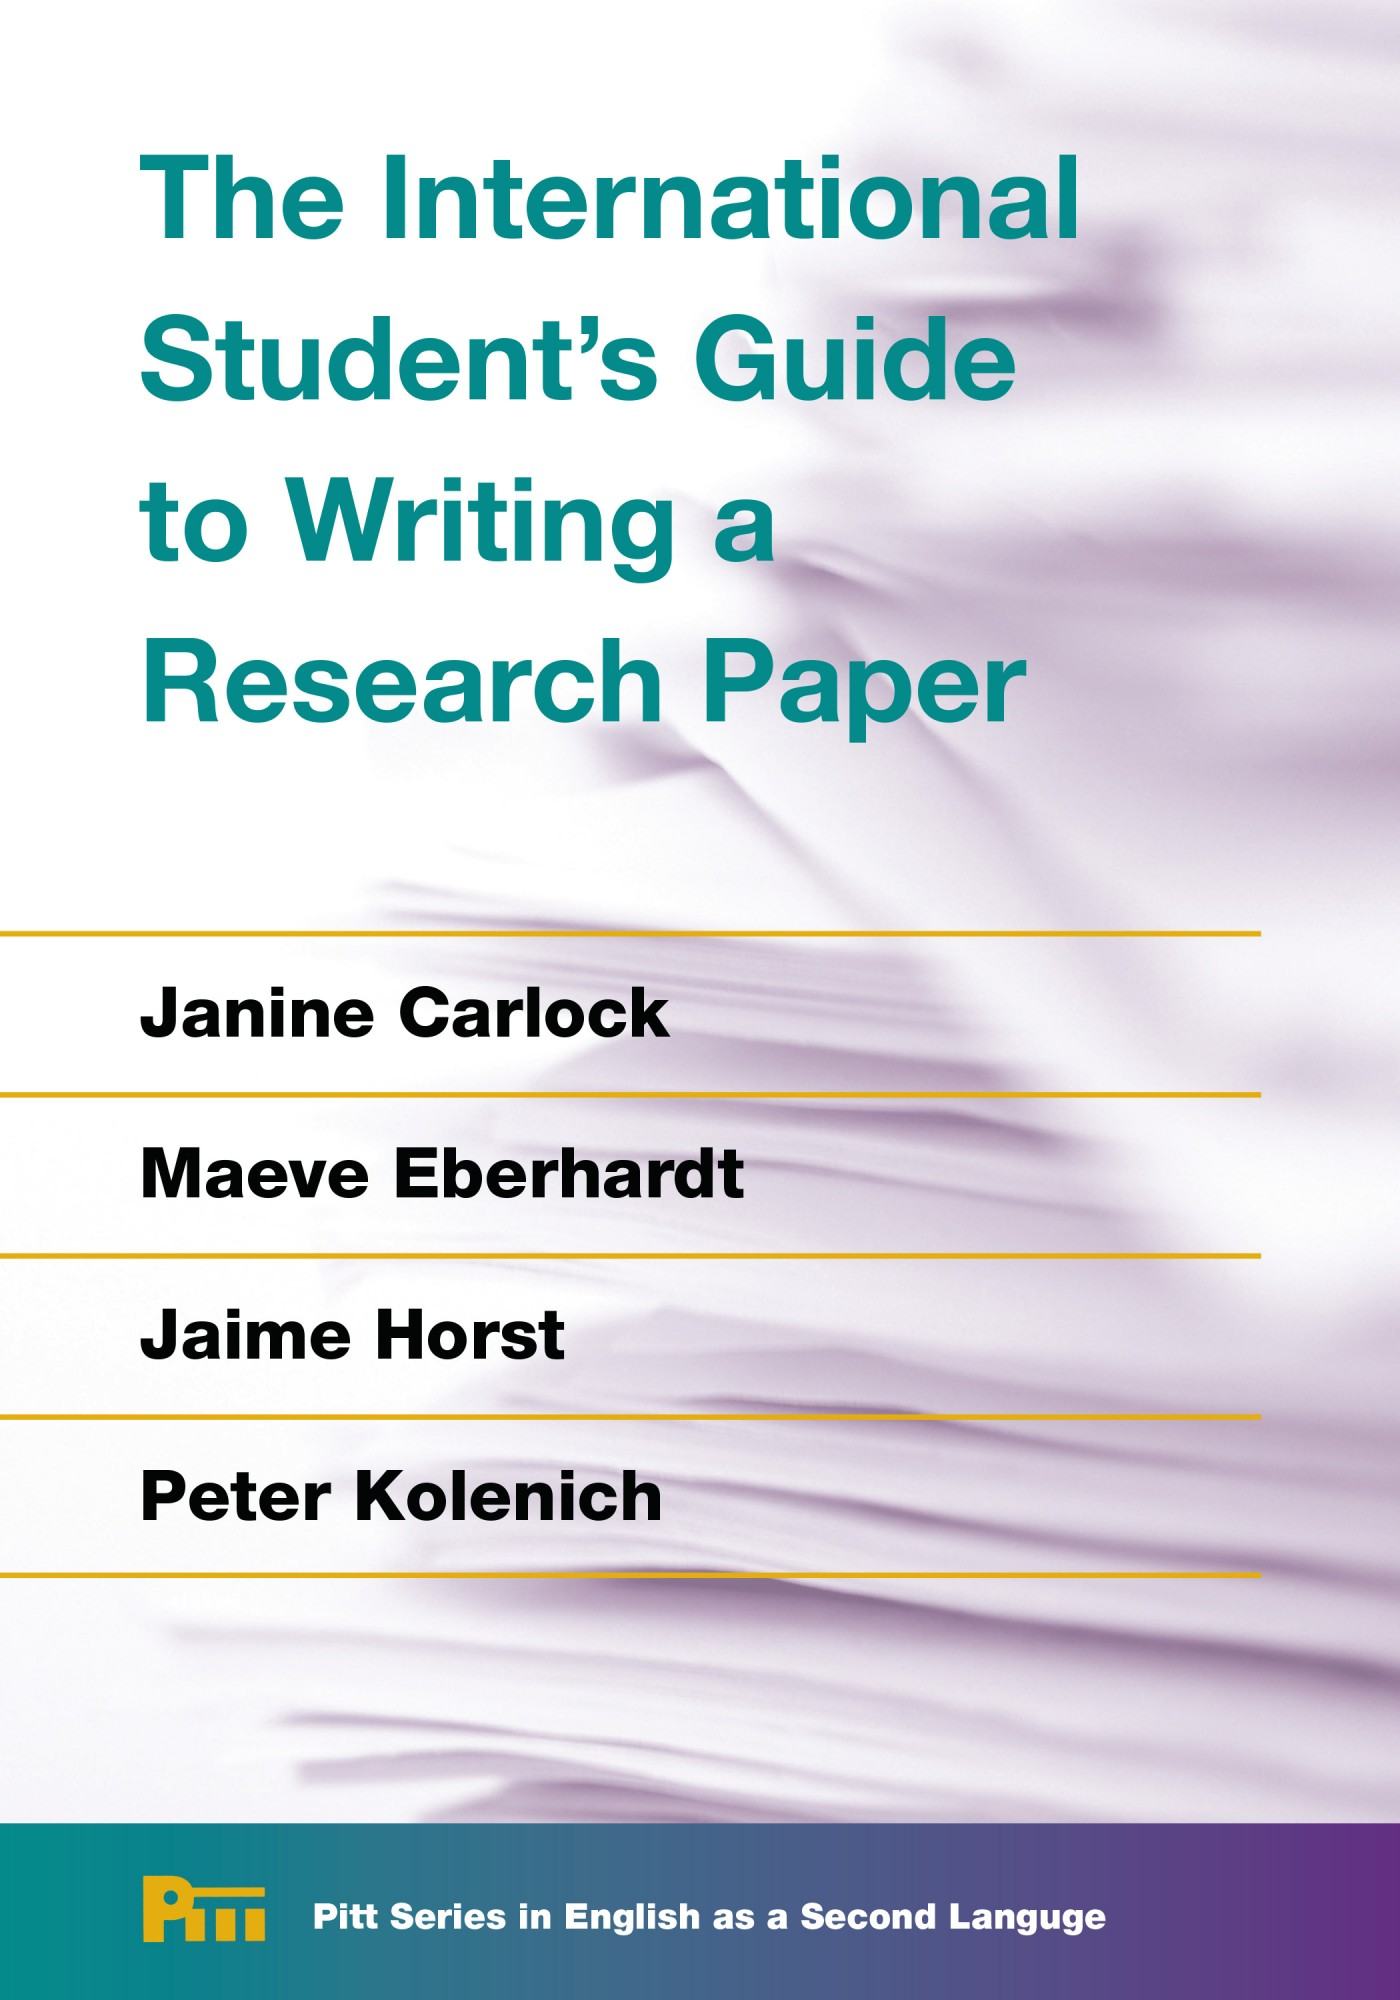 013 Research Paper Striking Writing Meme Papers A Complete Guide 15th Edition Pdf Free 16th 1400